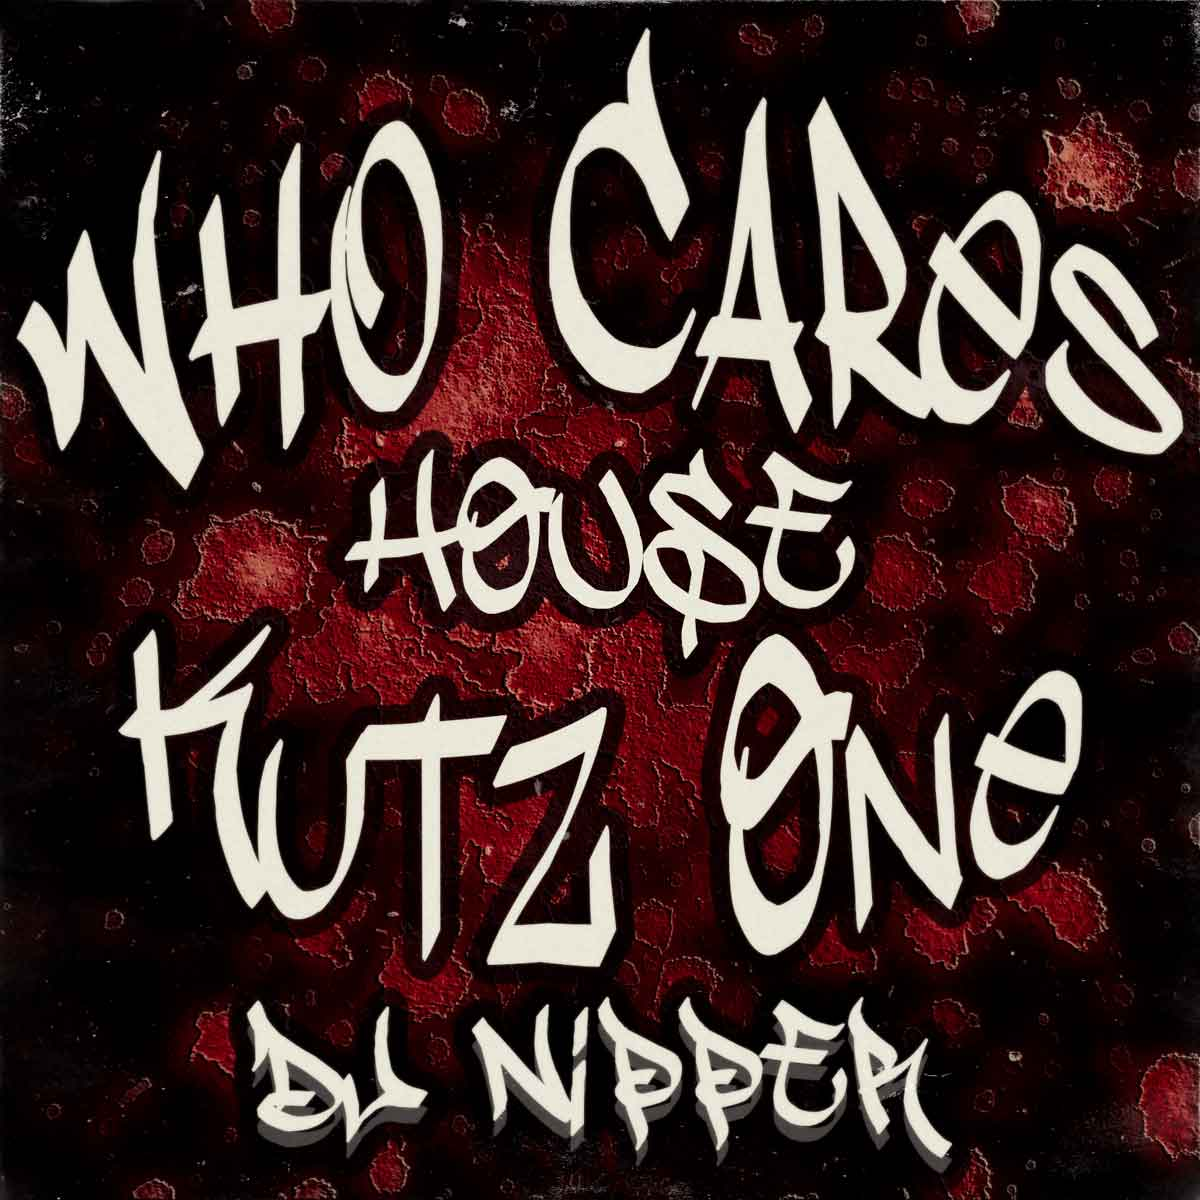 Who-Cares-House-Kutz-One1200